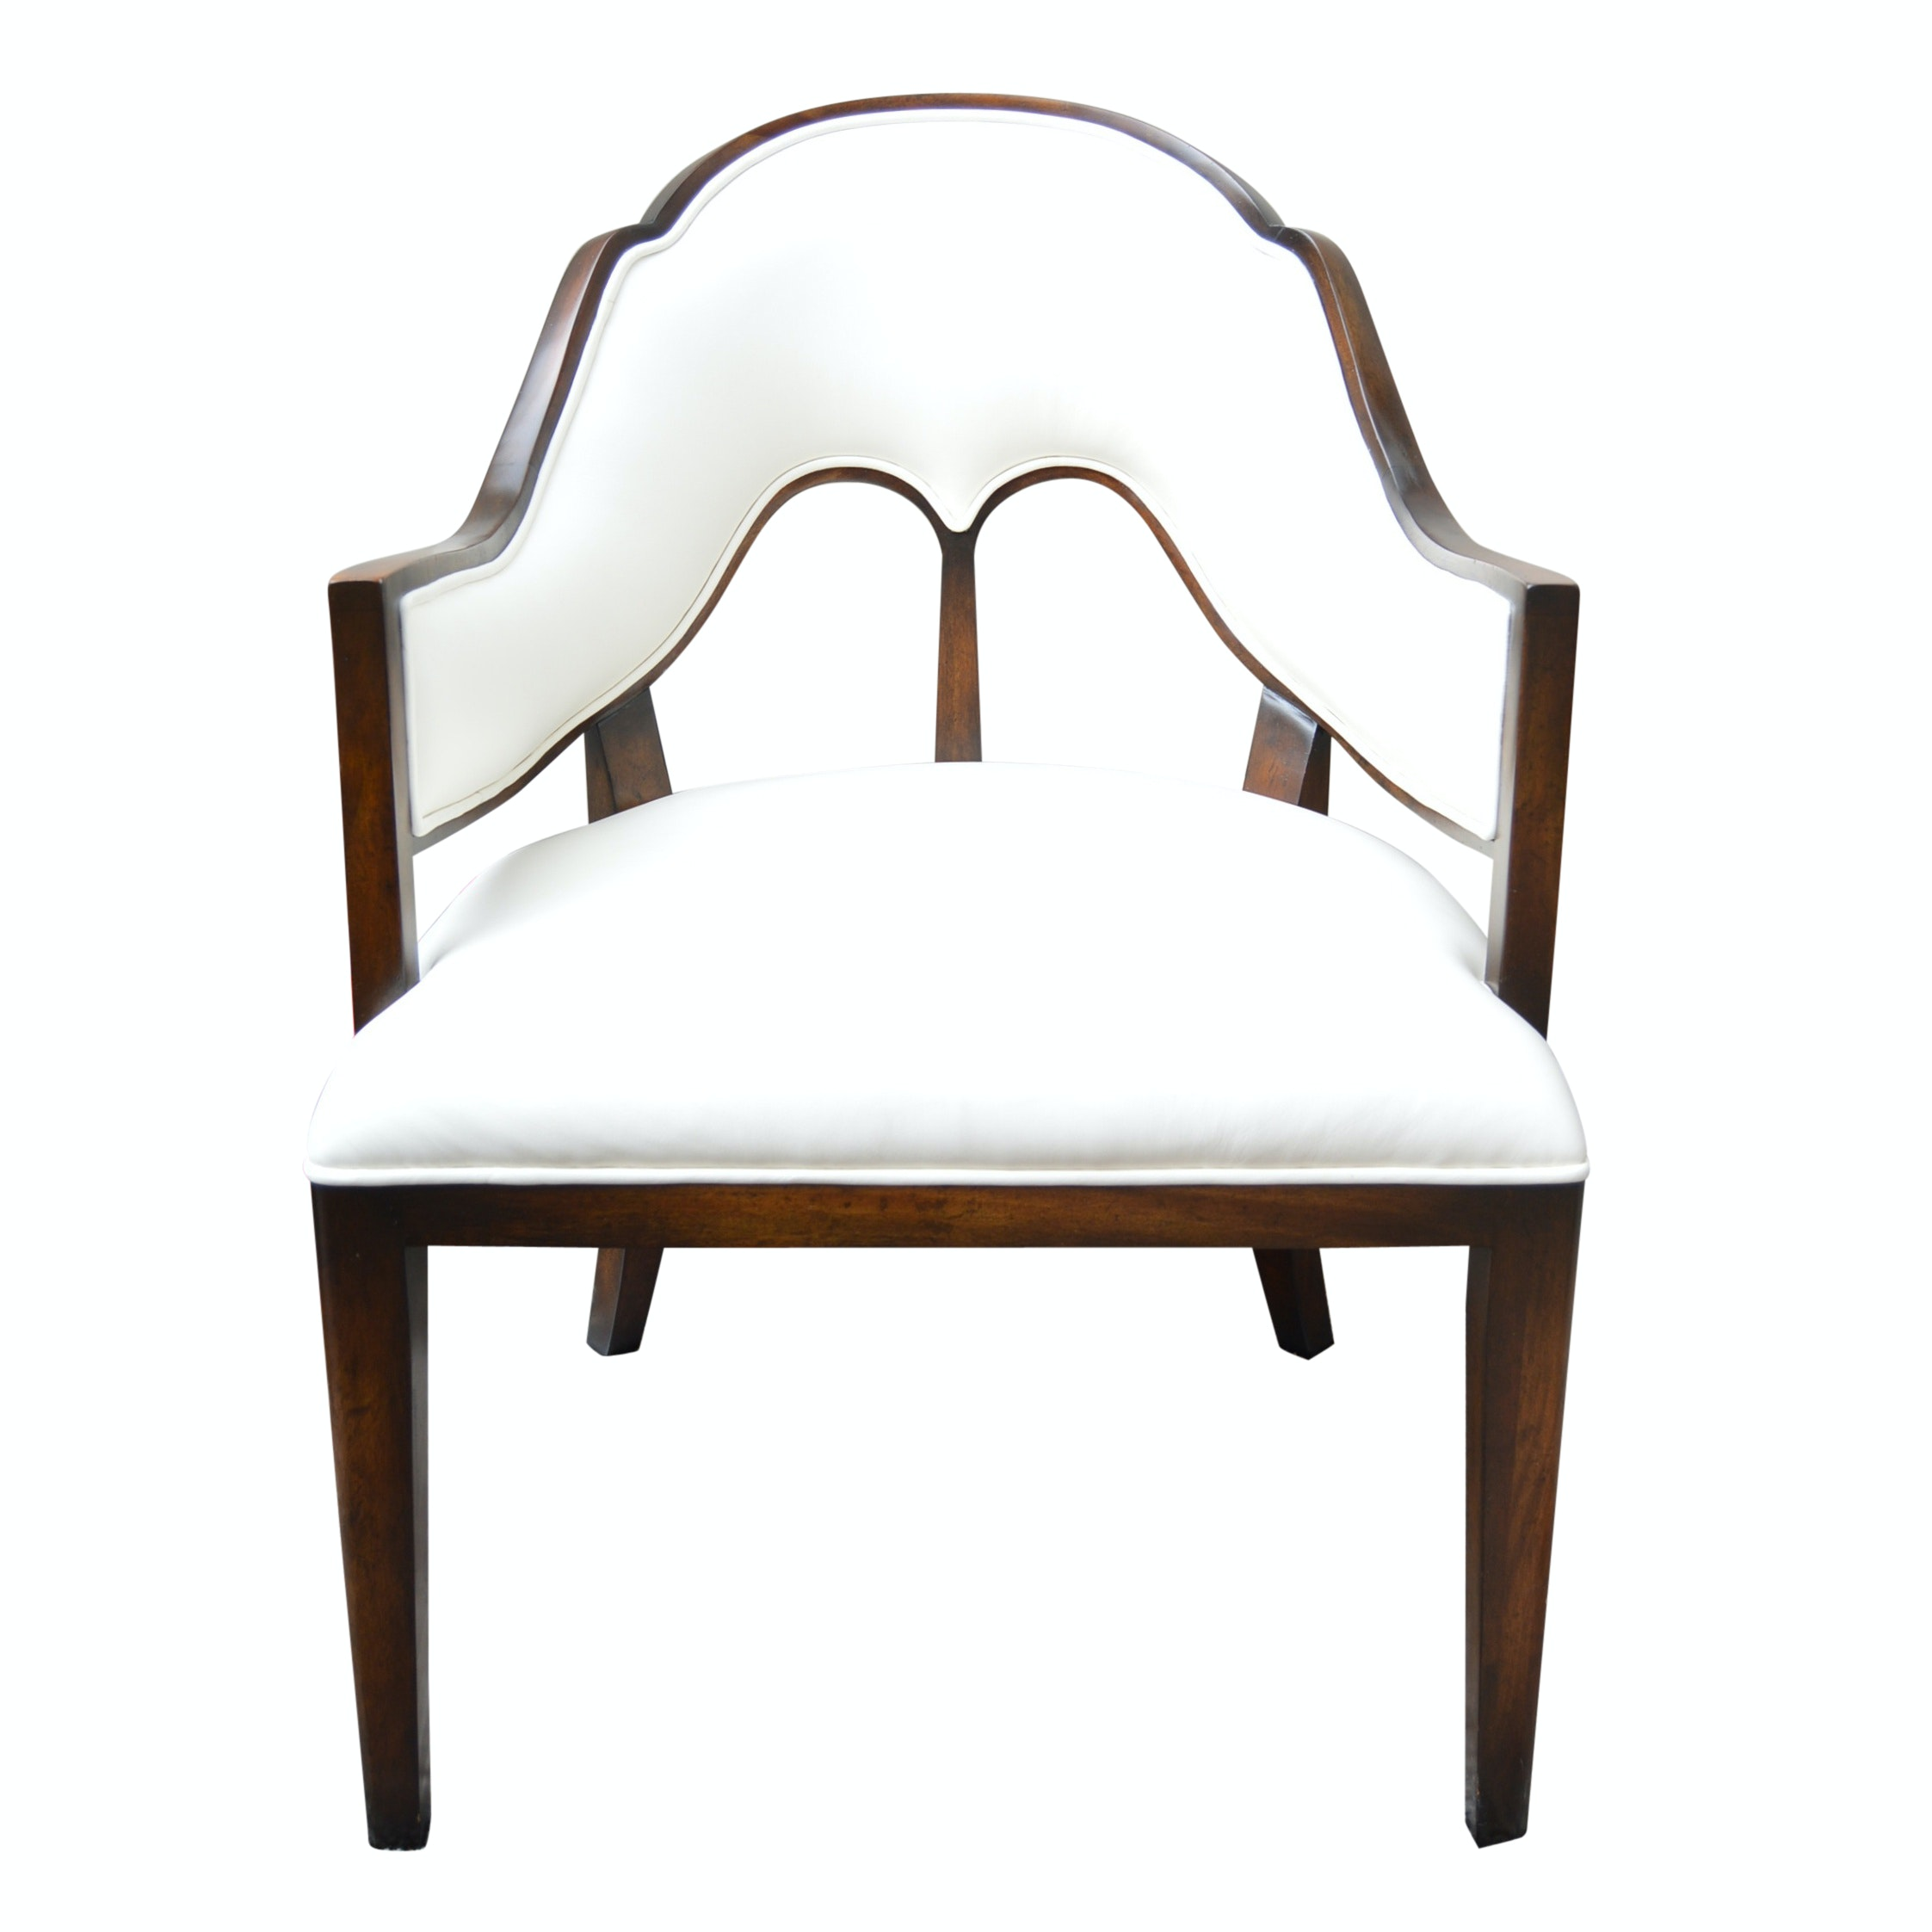 Art Deco Style White Leather and Mahogany Side Chair from John-Richard